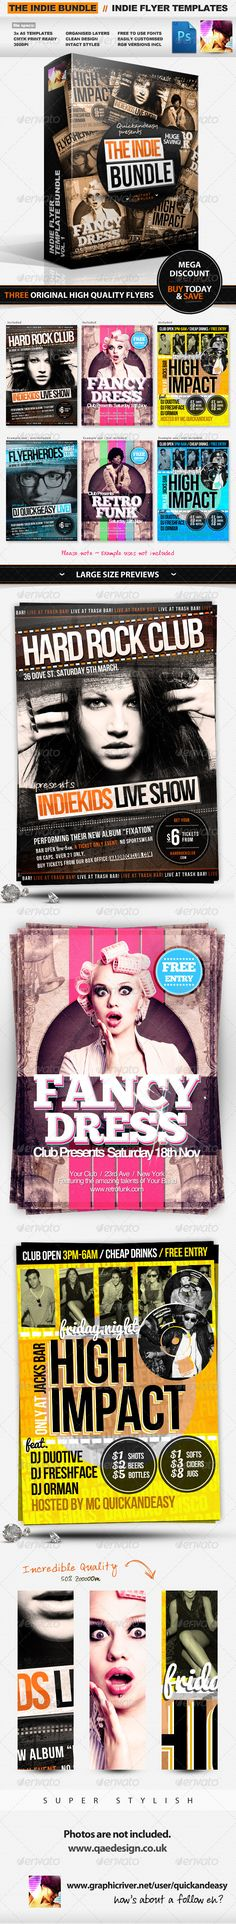 indie night flyer graphicriver indie night flyer poster templates this flyer template is the. Black Bedroom Furniture Sets. Home Design Ideas